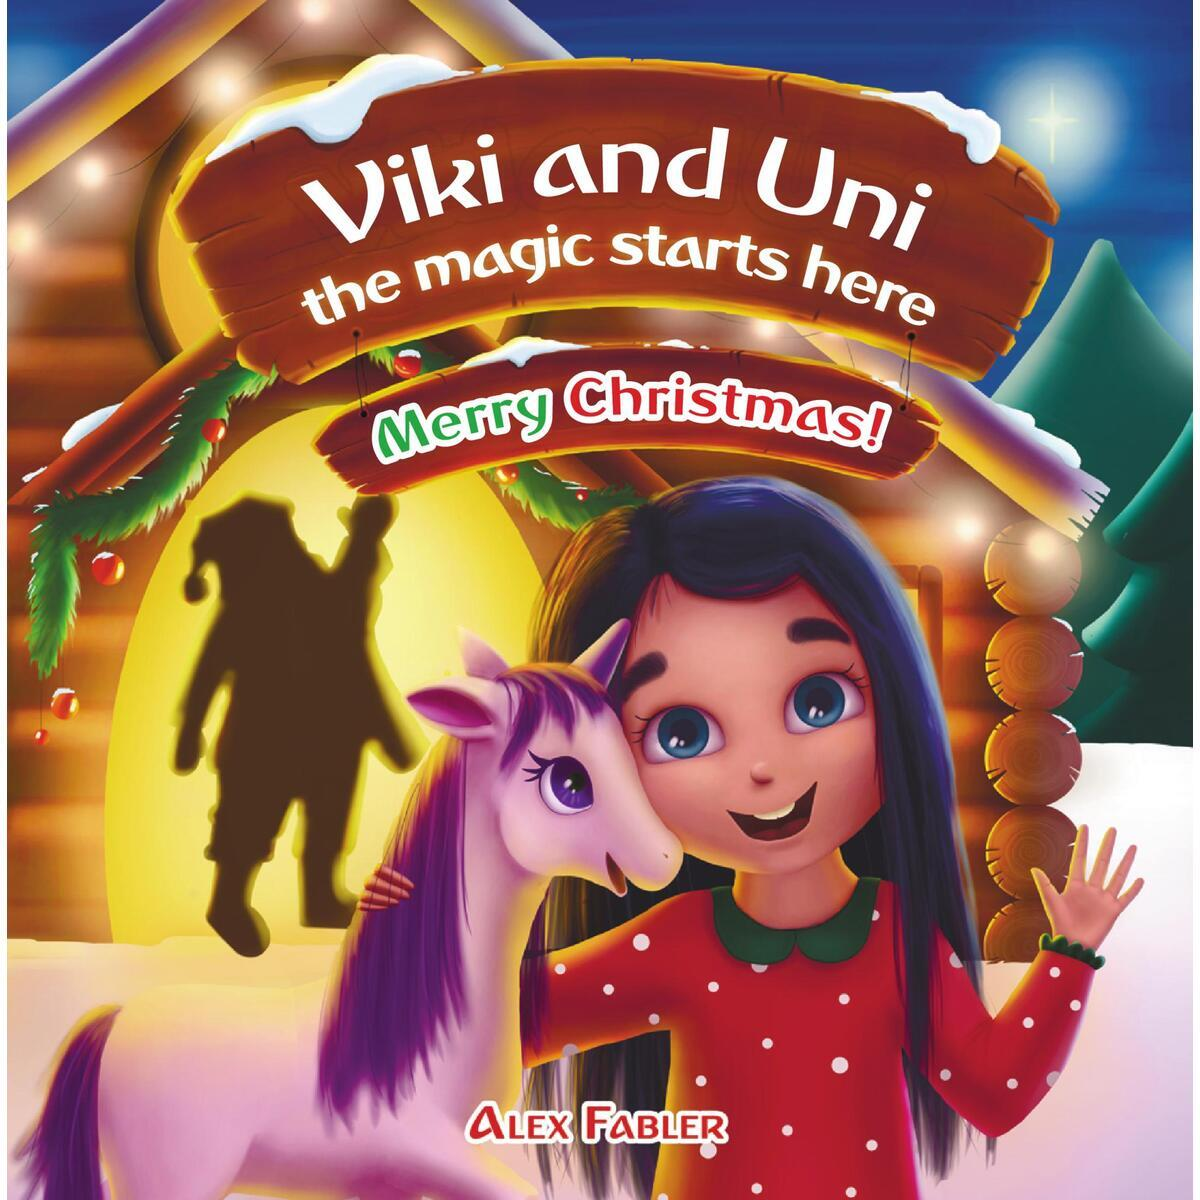 Viki and Uni: The magic starts here! Merry Christmas!